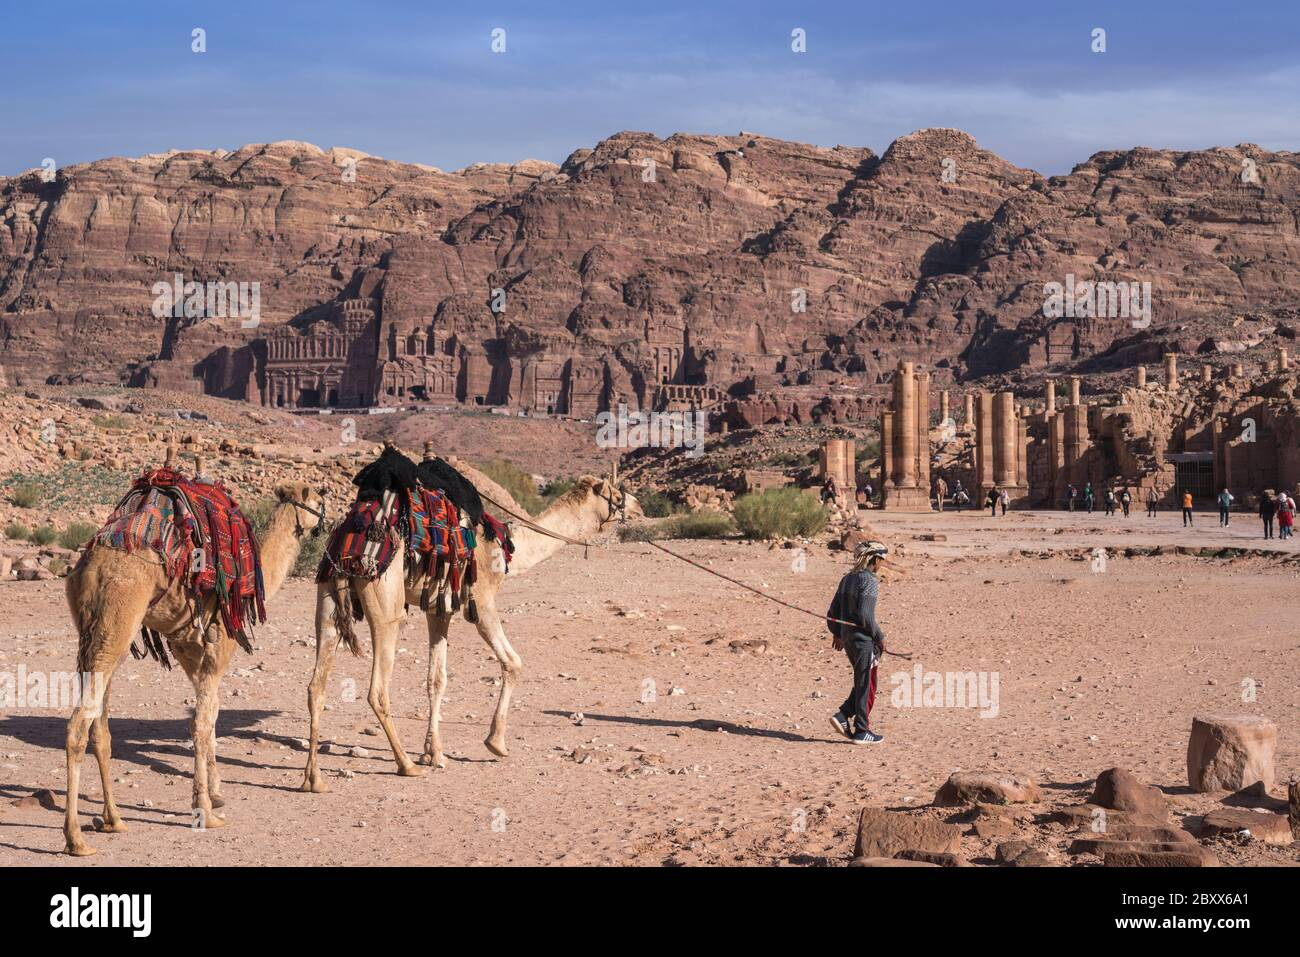 Guide leads camels for tourist ride in Petra, Jordan. Stock Photo